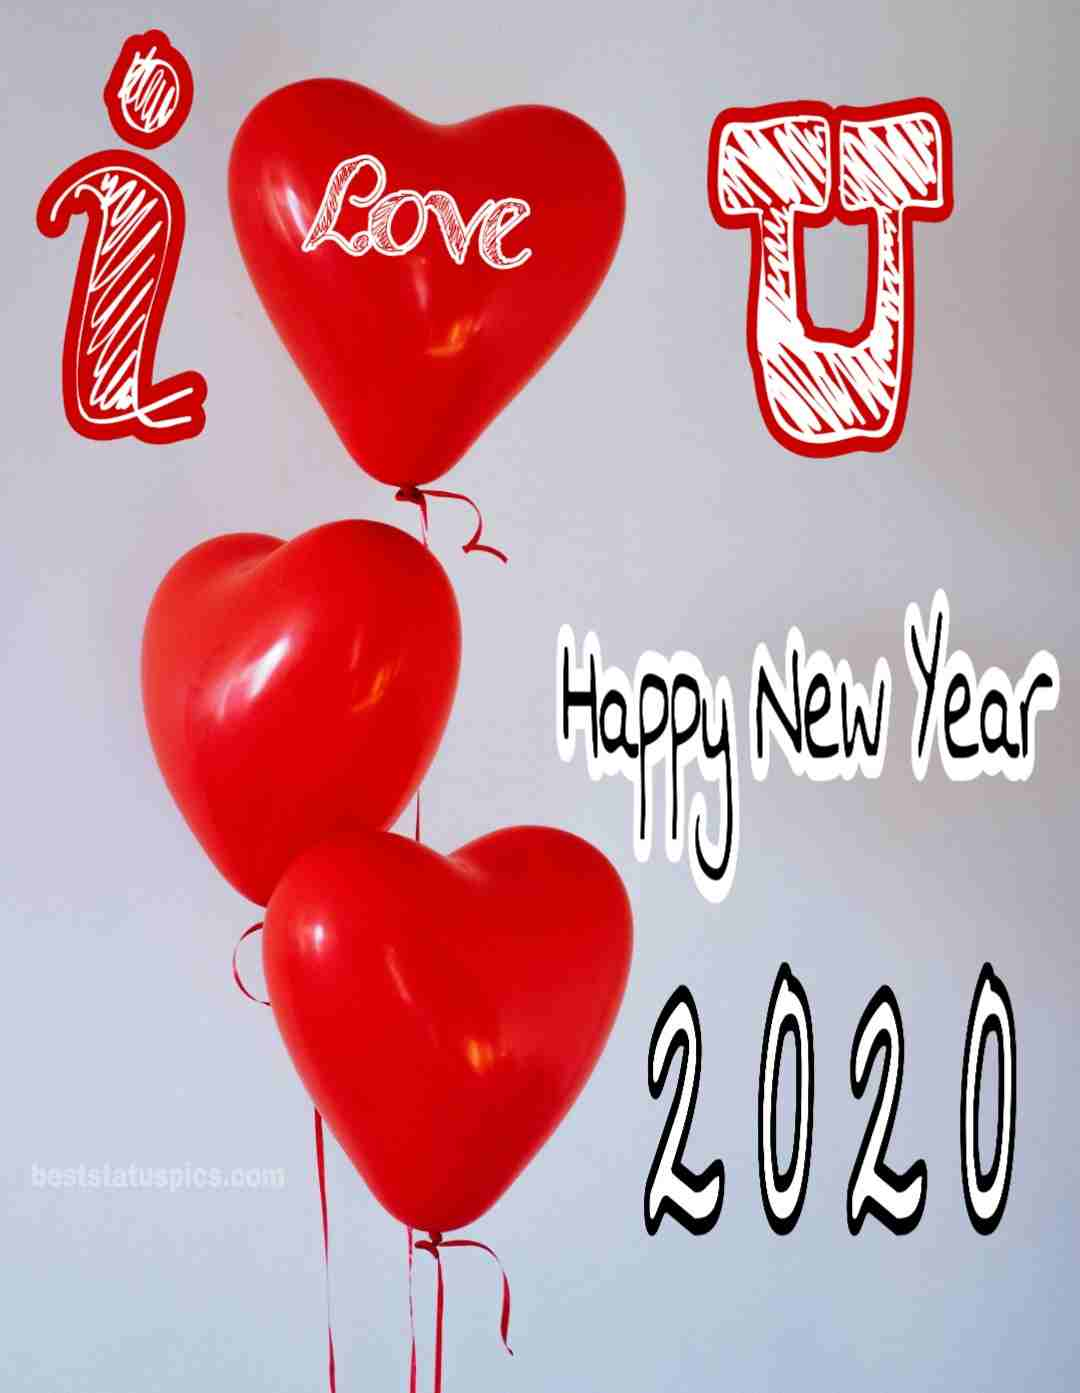 Happy New Year 2020 Image with I love you heart